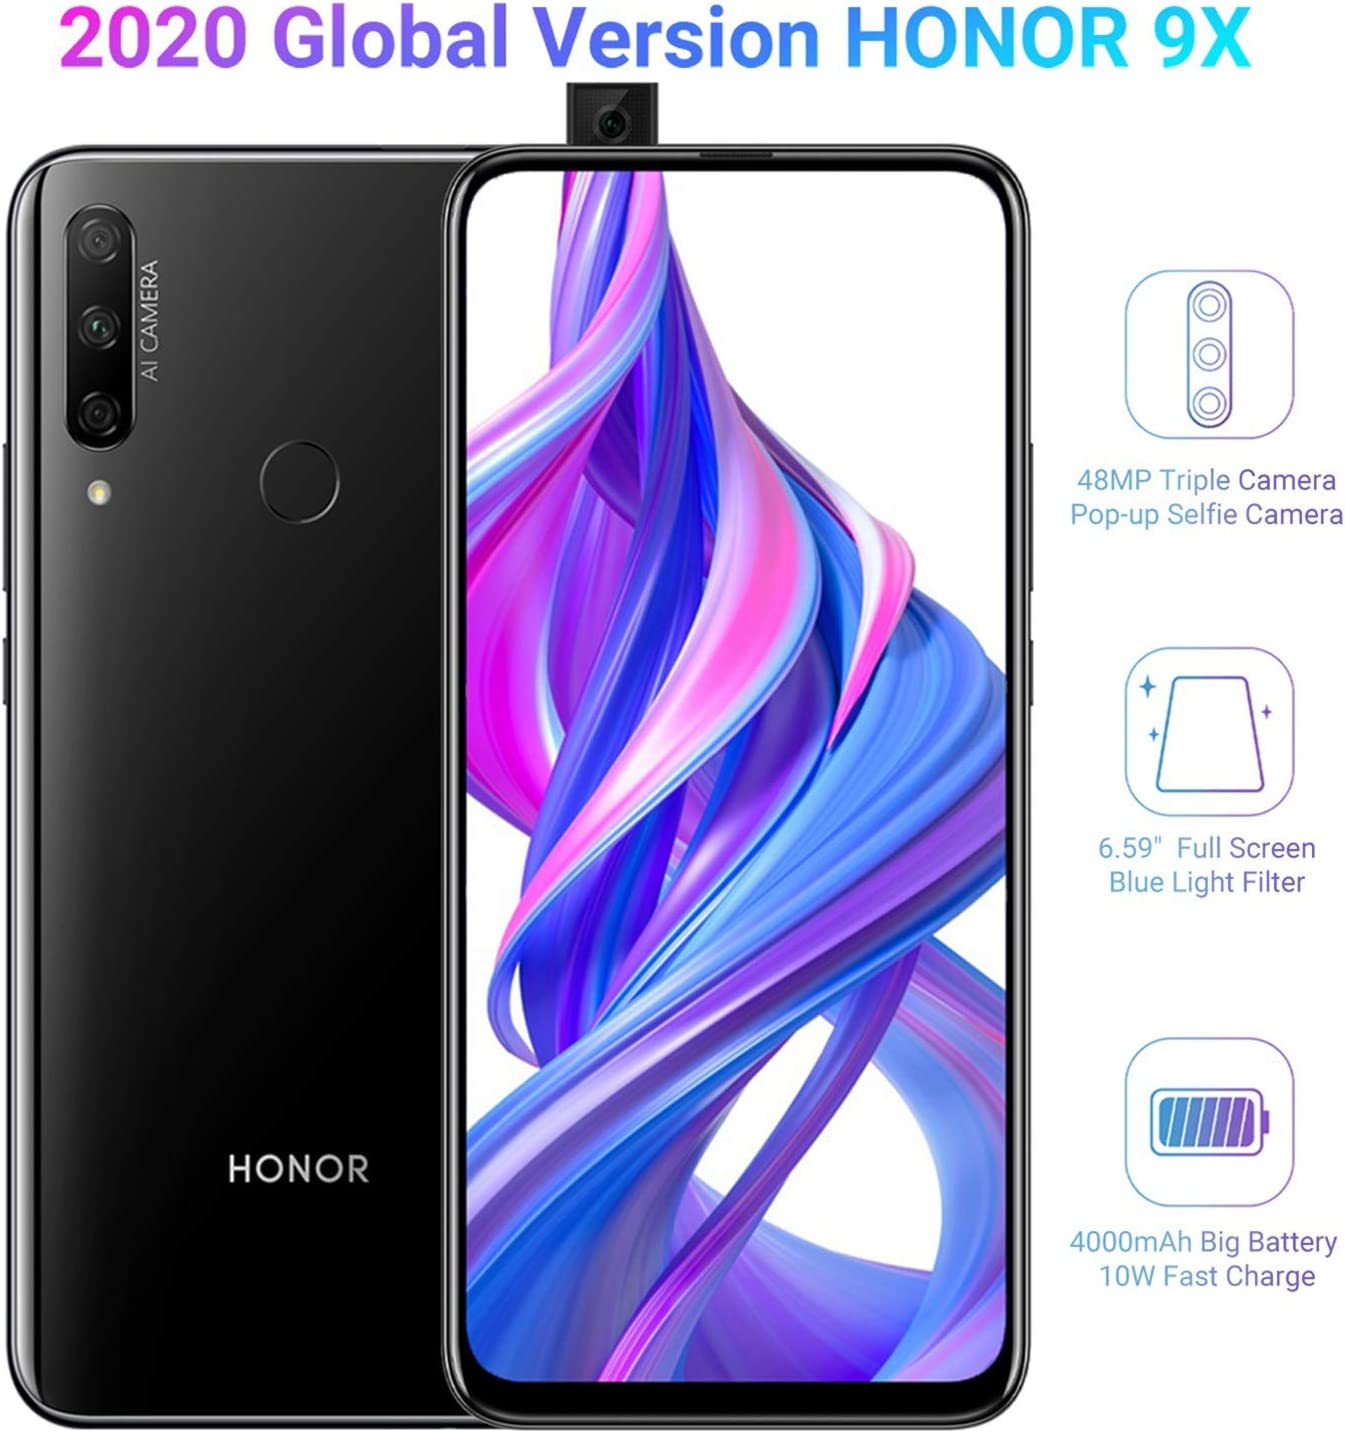 HONOR 9X Smartphone Telefono Movil 4GB RAM 128GB ROM, Pantalla ...